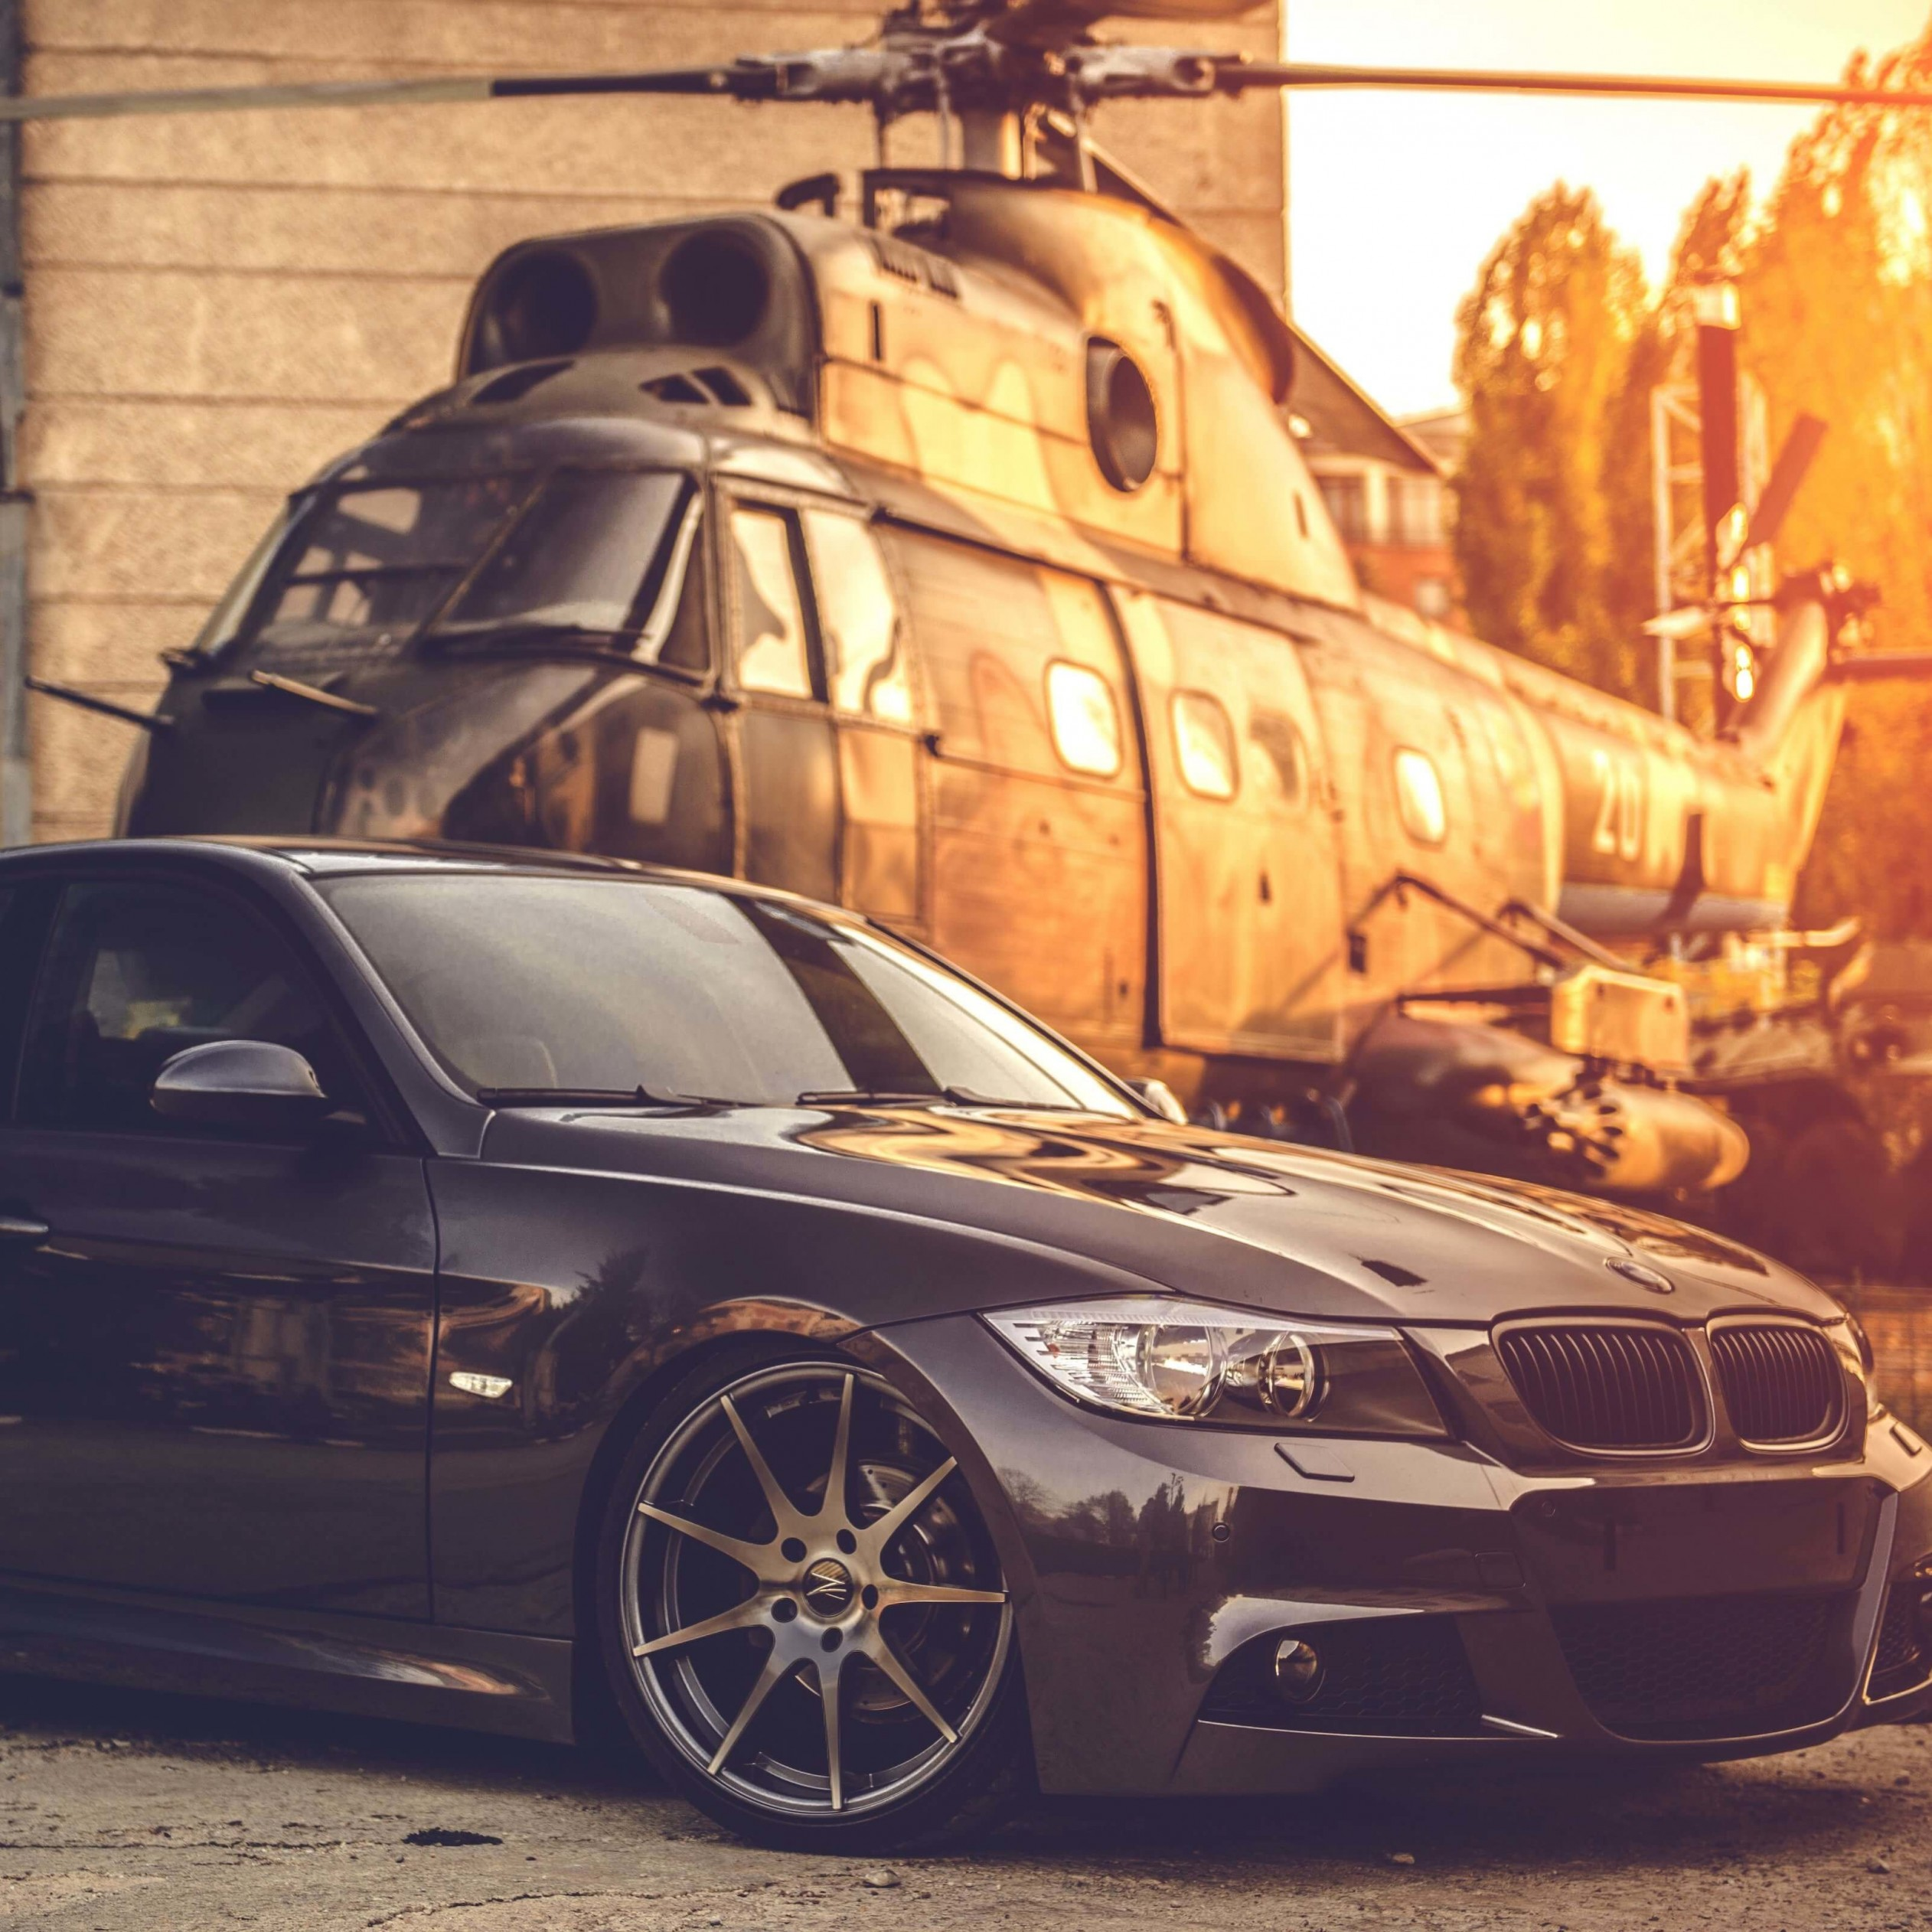 BMW E90 on Z-Performance Wheels Wallpaper for Apple iPad Air